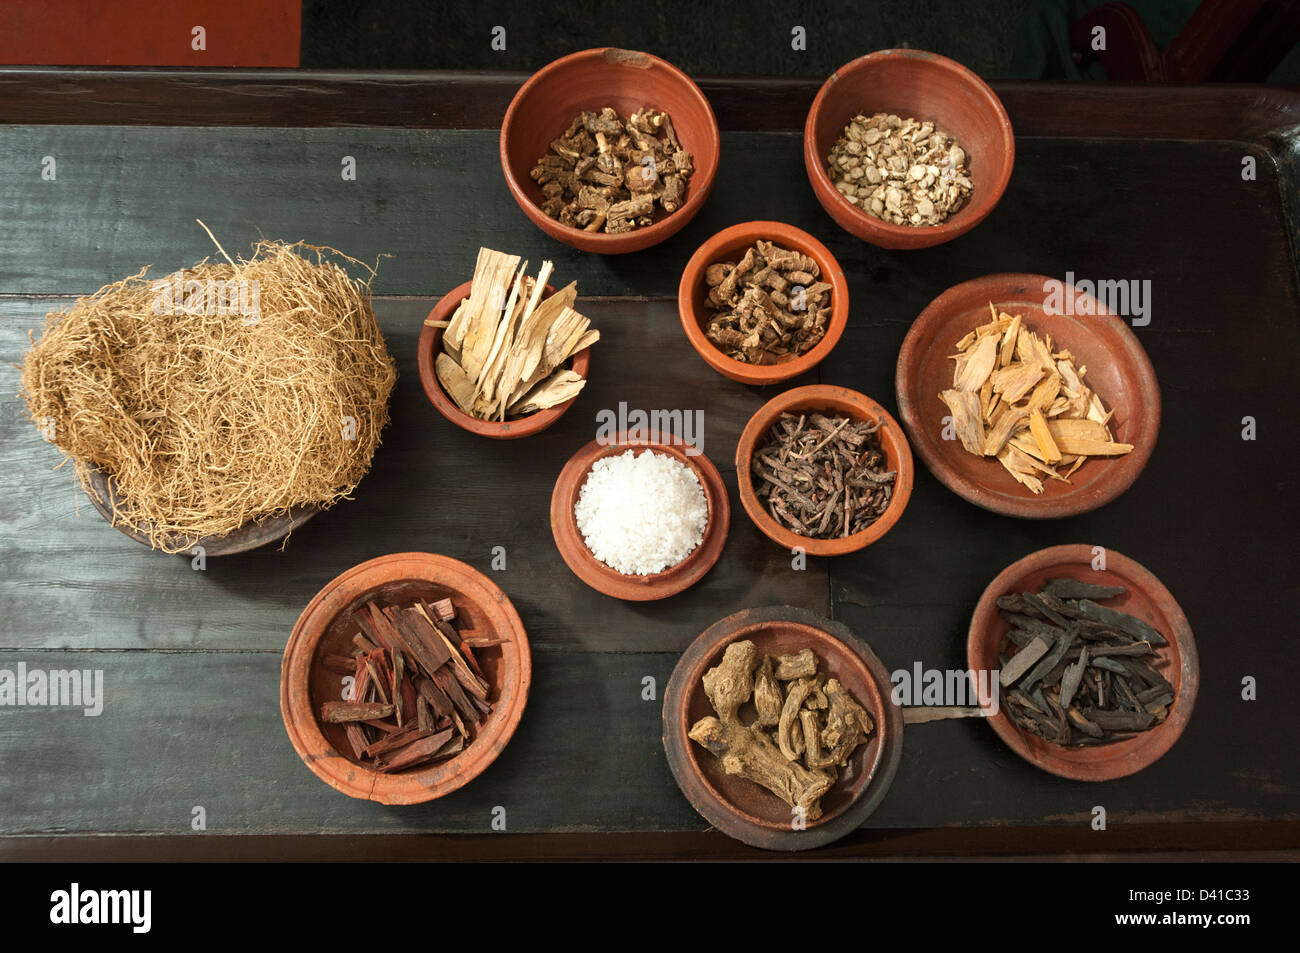 Ayurvedic Spices in mud pots, India - Stock Image